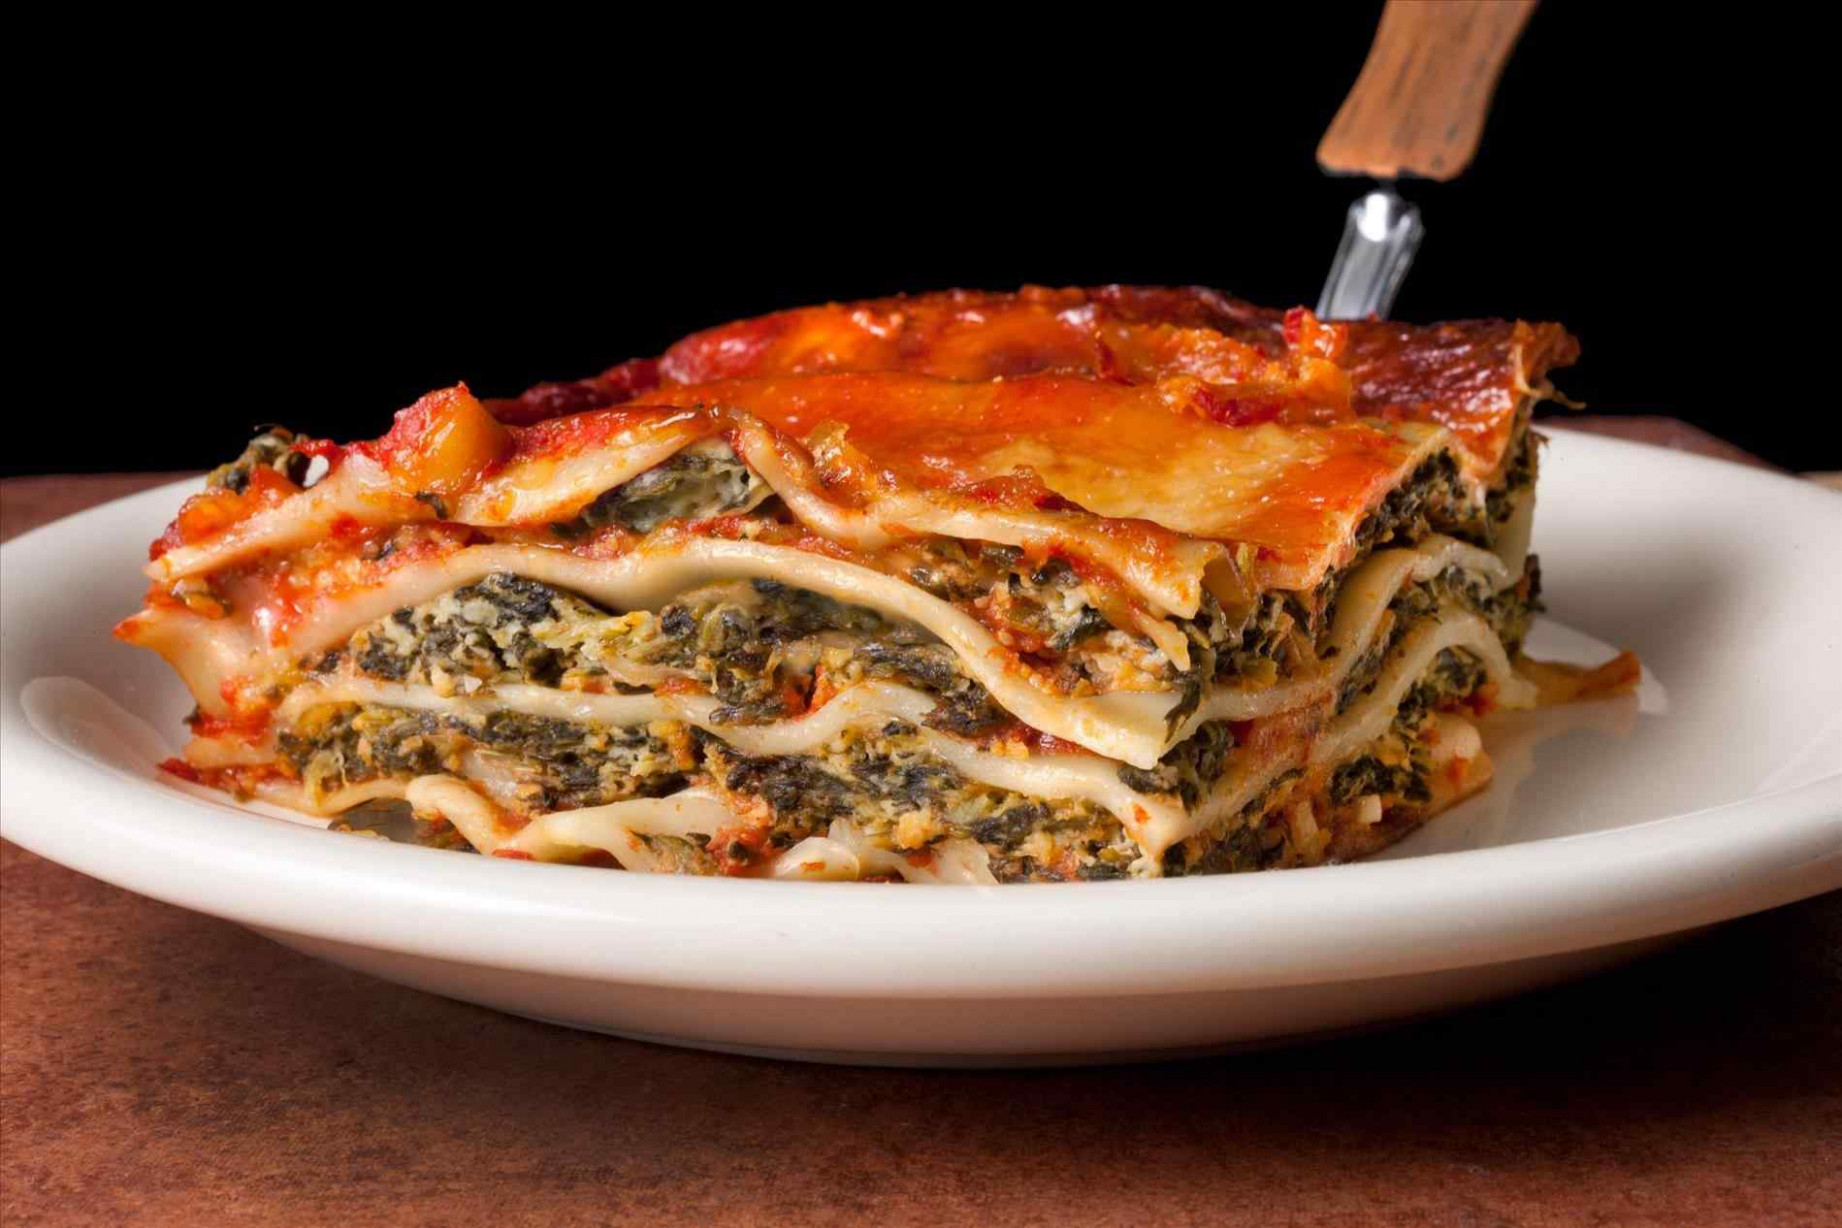 Easy Meal Rhfoodnetworkcom Fast Easy And Fast Dinner ..